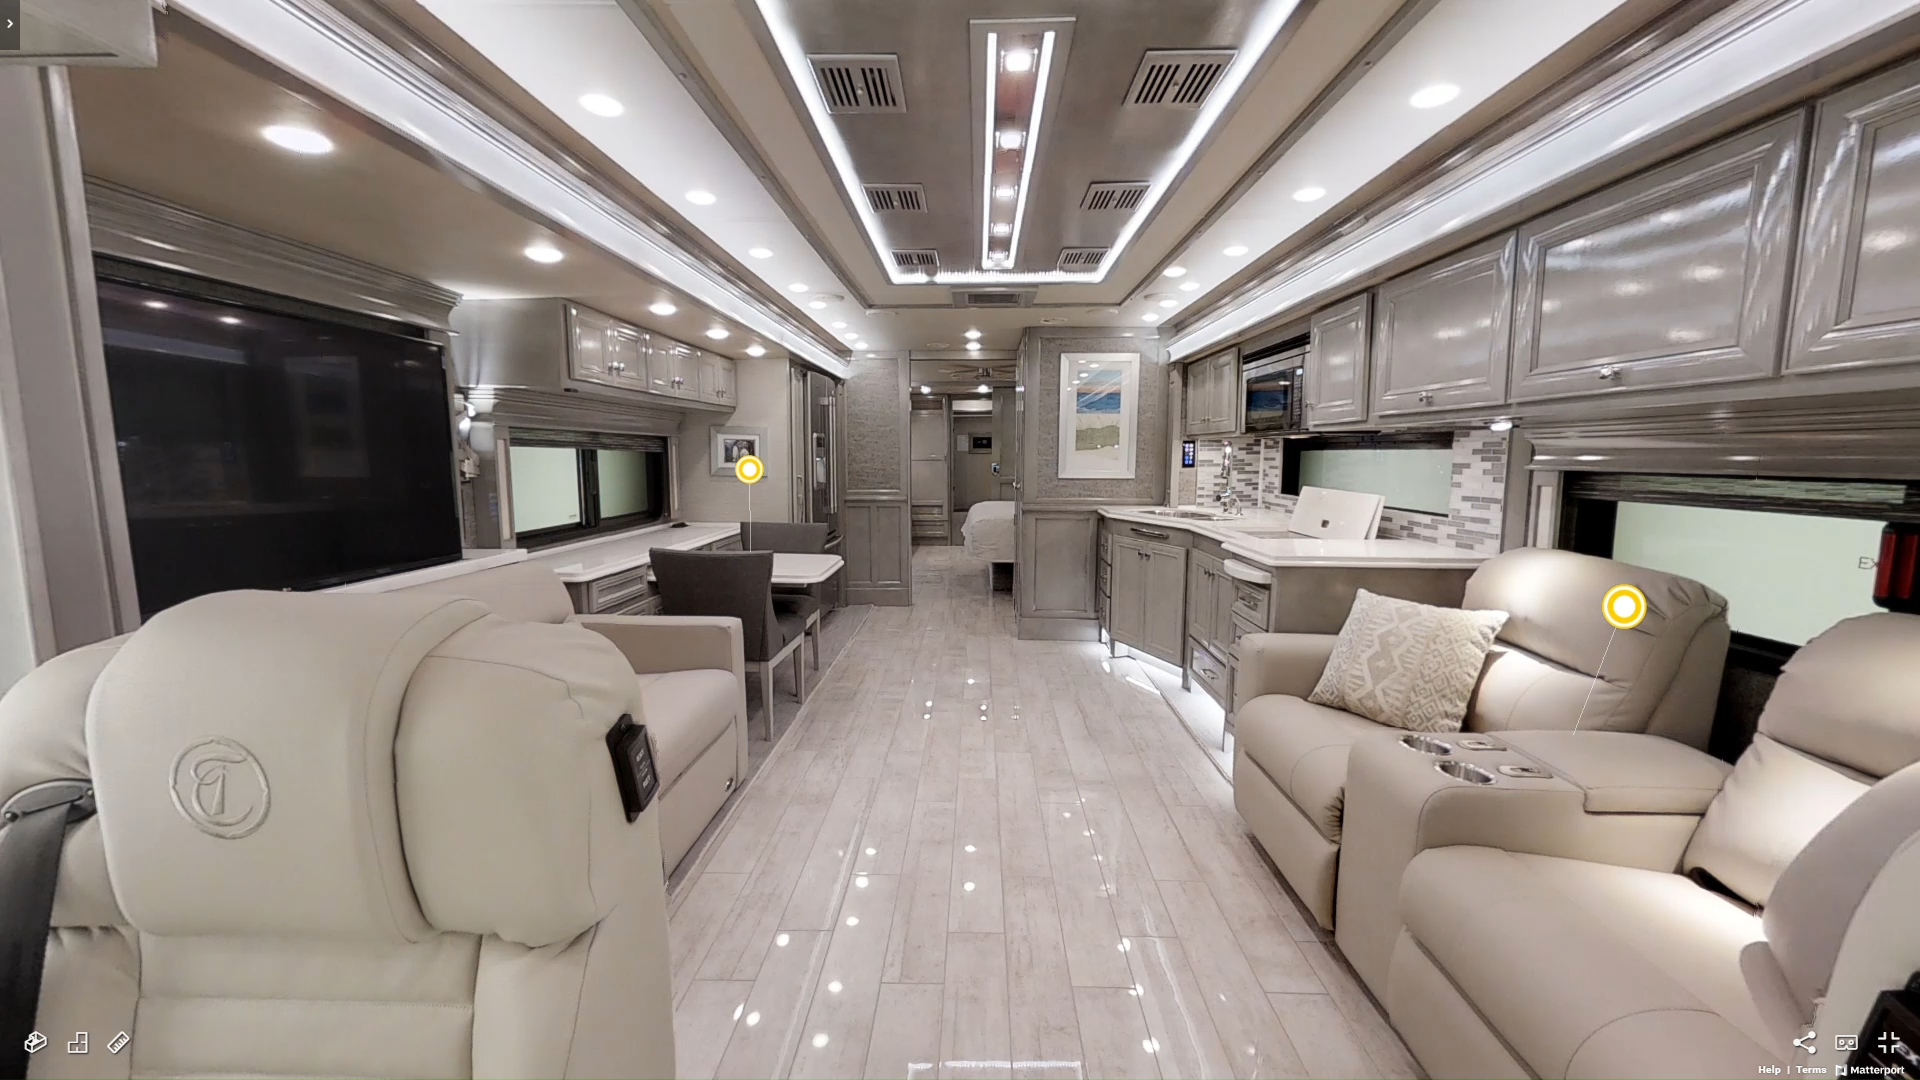 Experience the #TiffinMotorhomes #Phaeton in person at Lazydays! This amazing #LuxuryRV is even more impressive when you're walking through it yourself. Tiffin truly knows how to help you live the #RVLifetyle